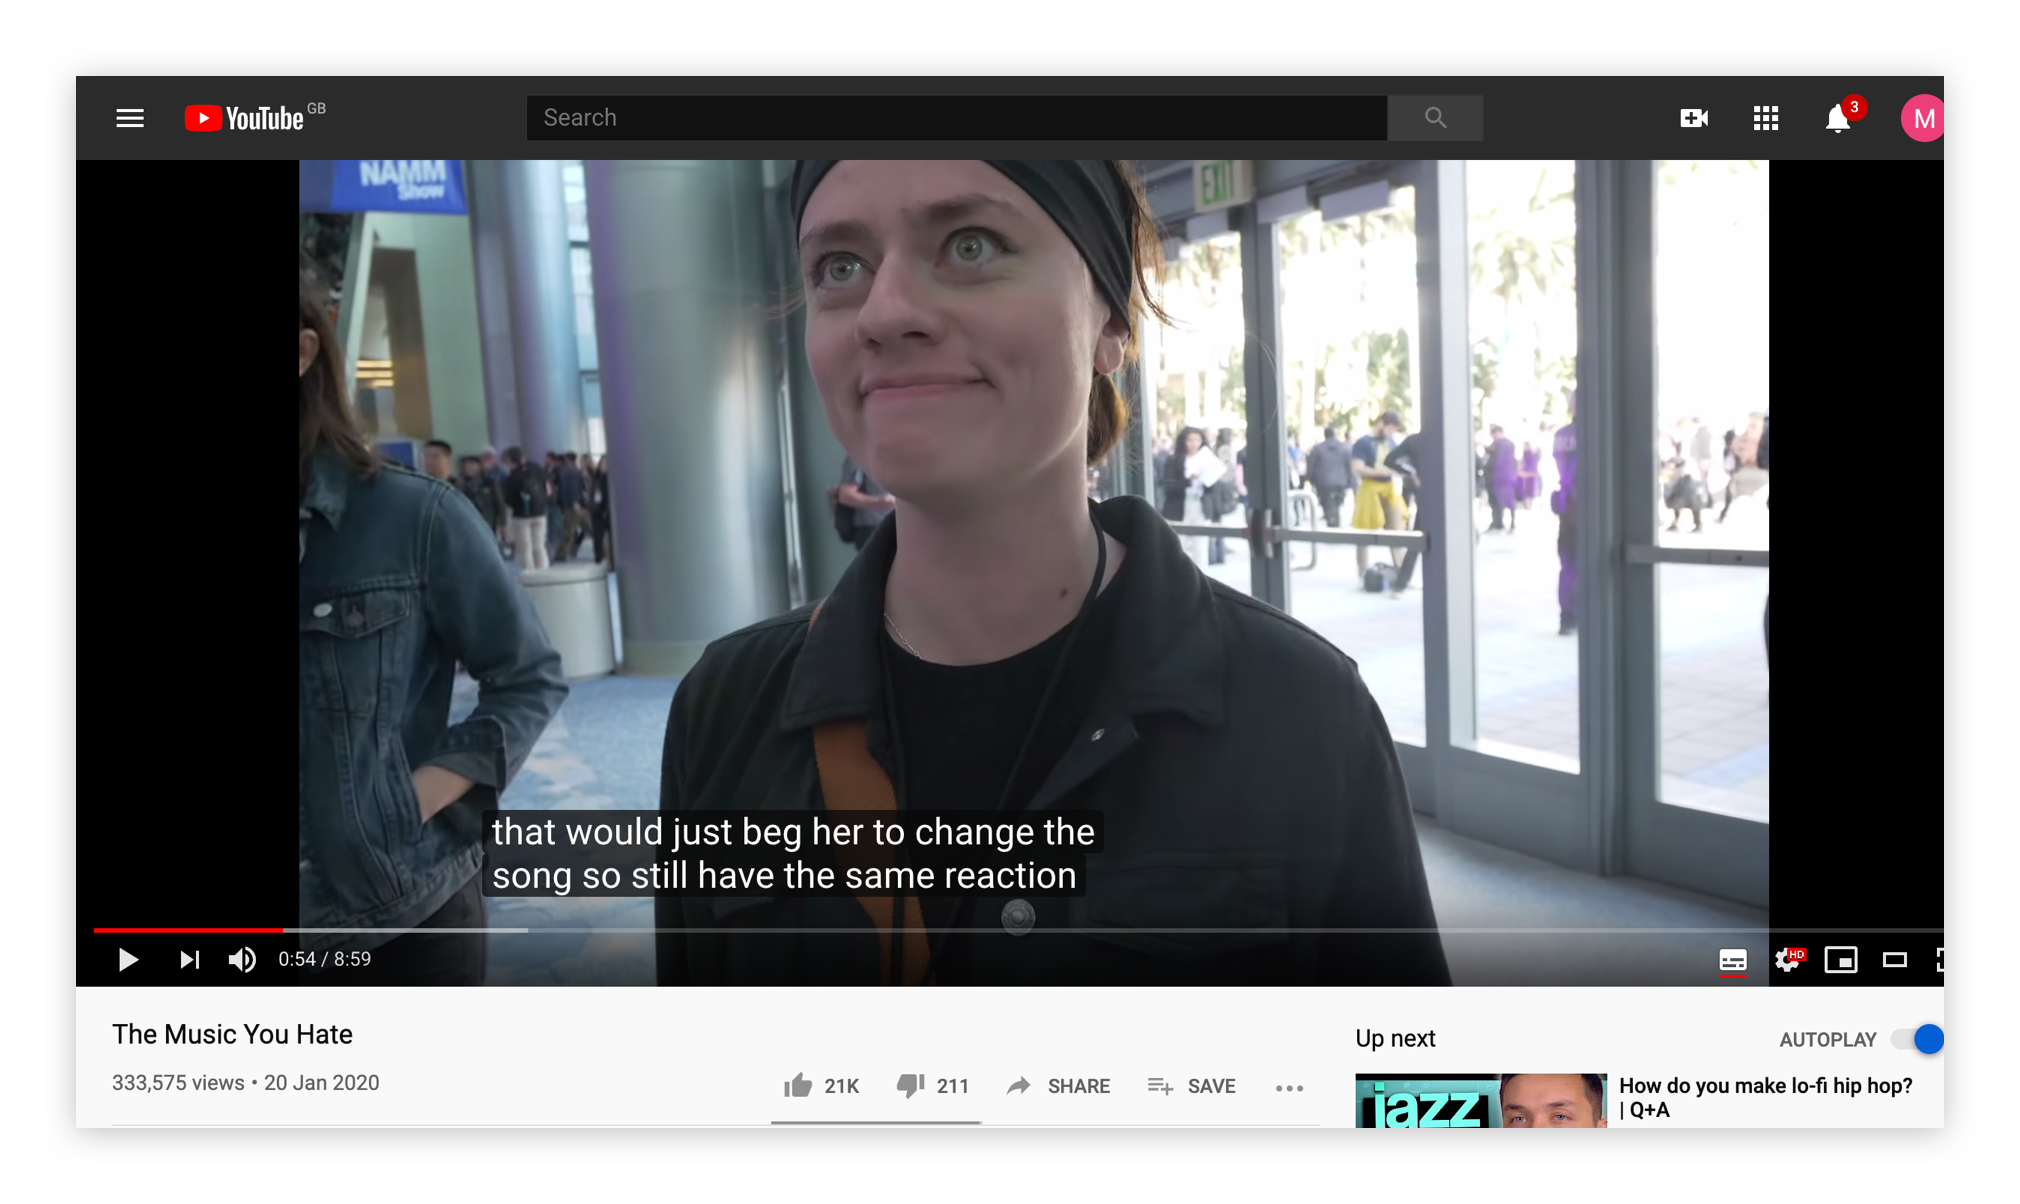 A screenshot from YouTube showing the automatic captioning feature.